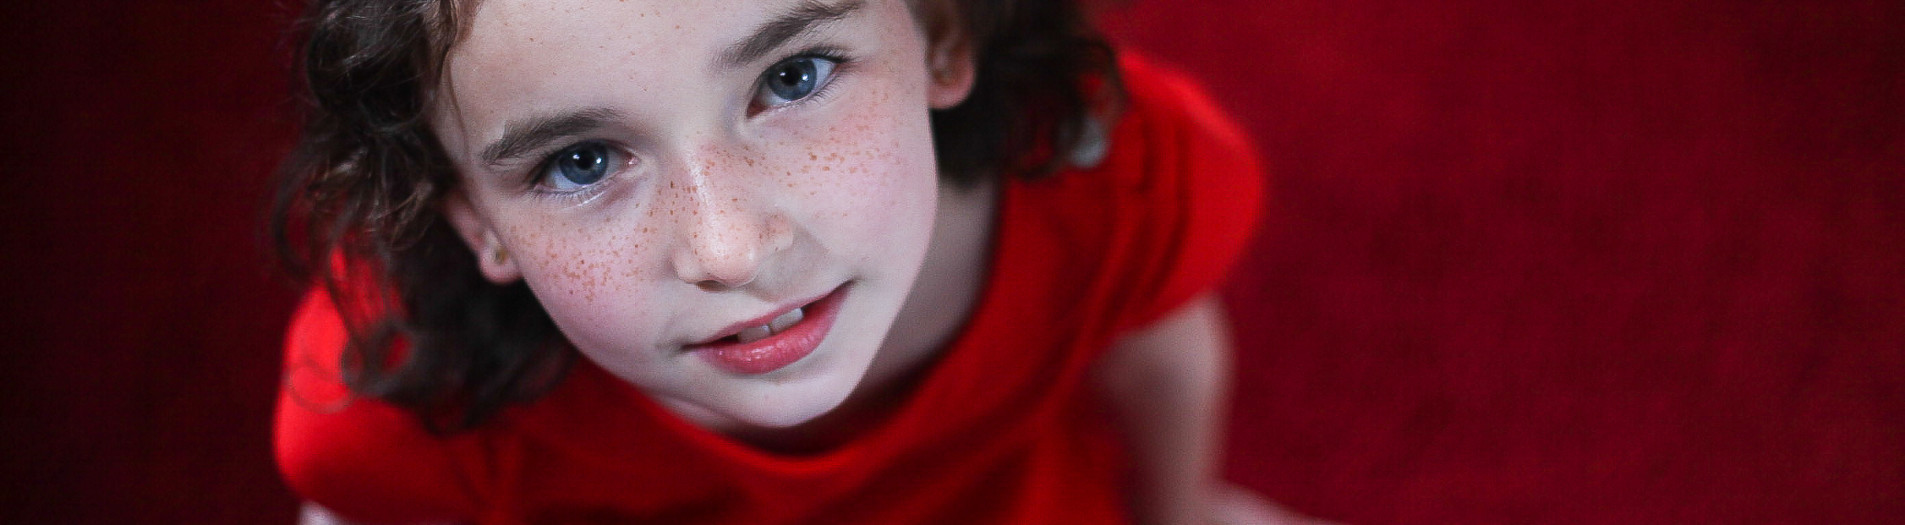 Lady in red | Kids portrait at home and location.